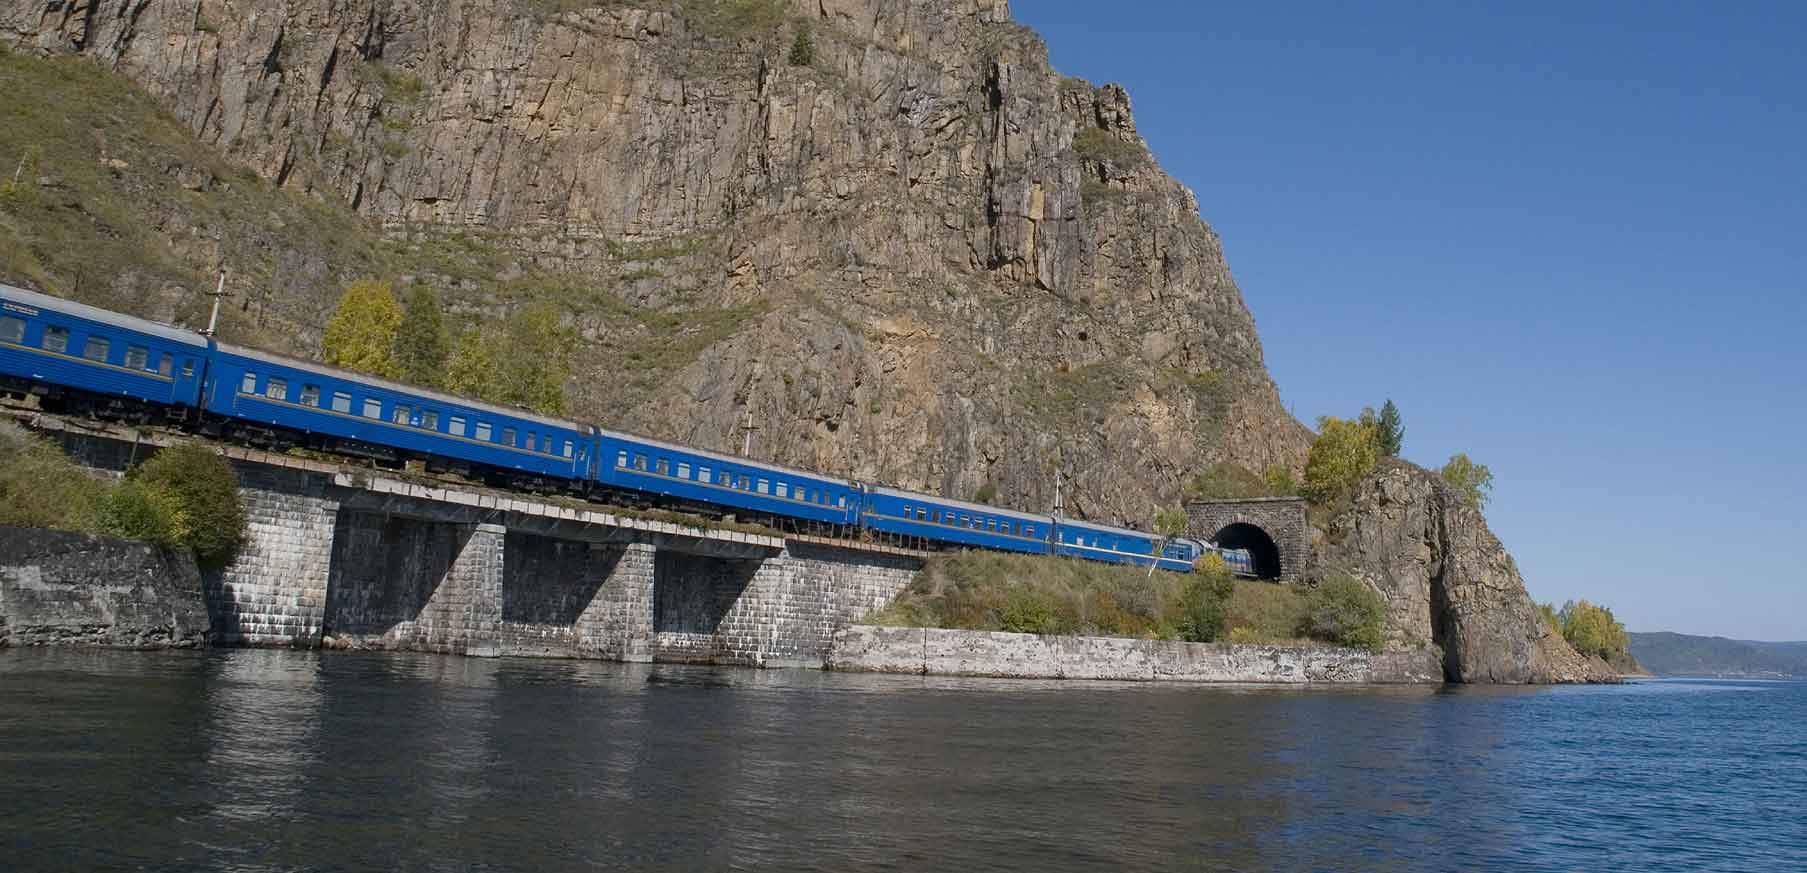 Los 10 viajes mas espectaculares_06 The Golden Eagle Trans-Siberian Express, Rusia